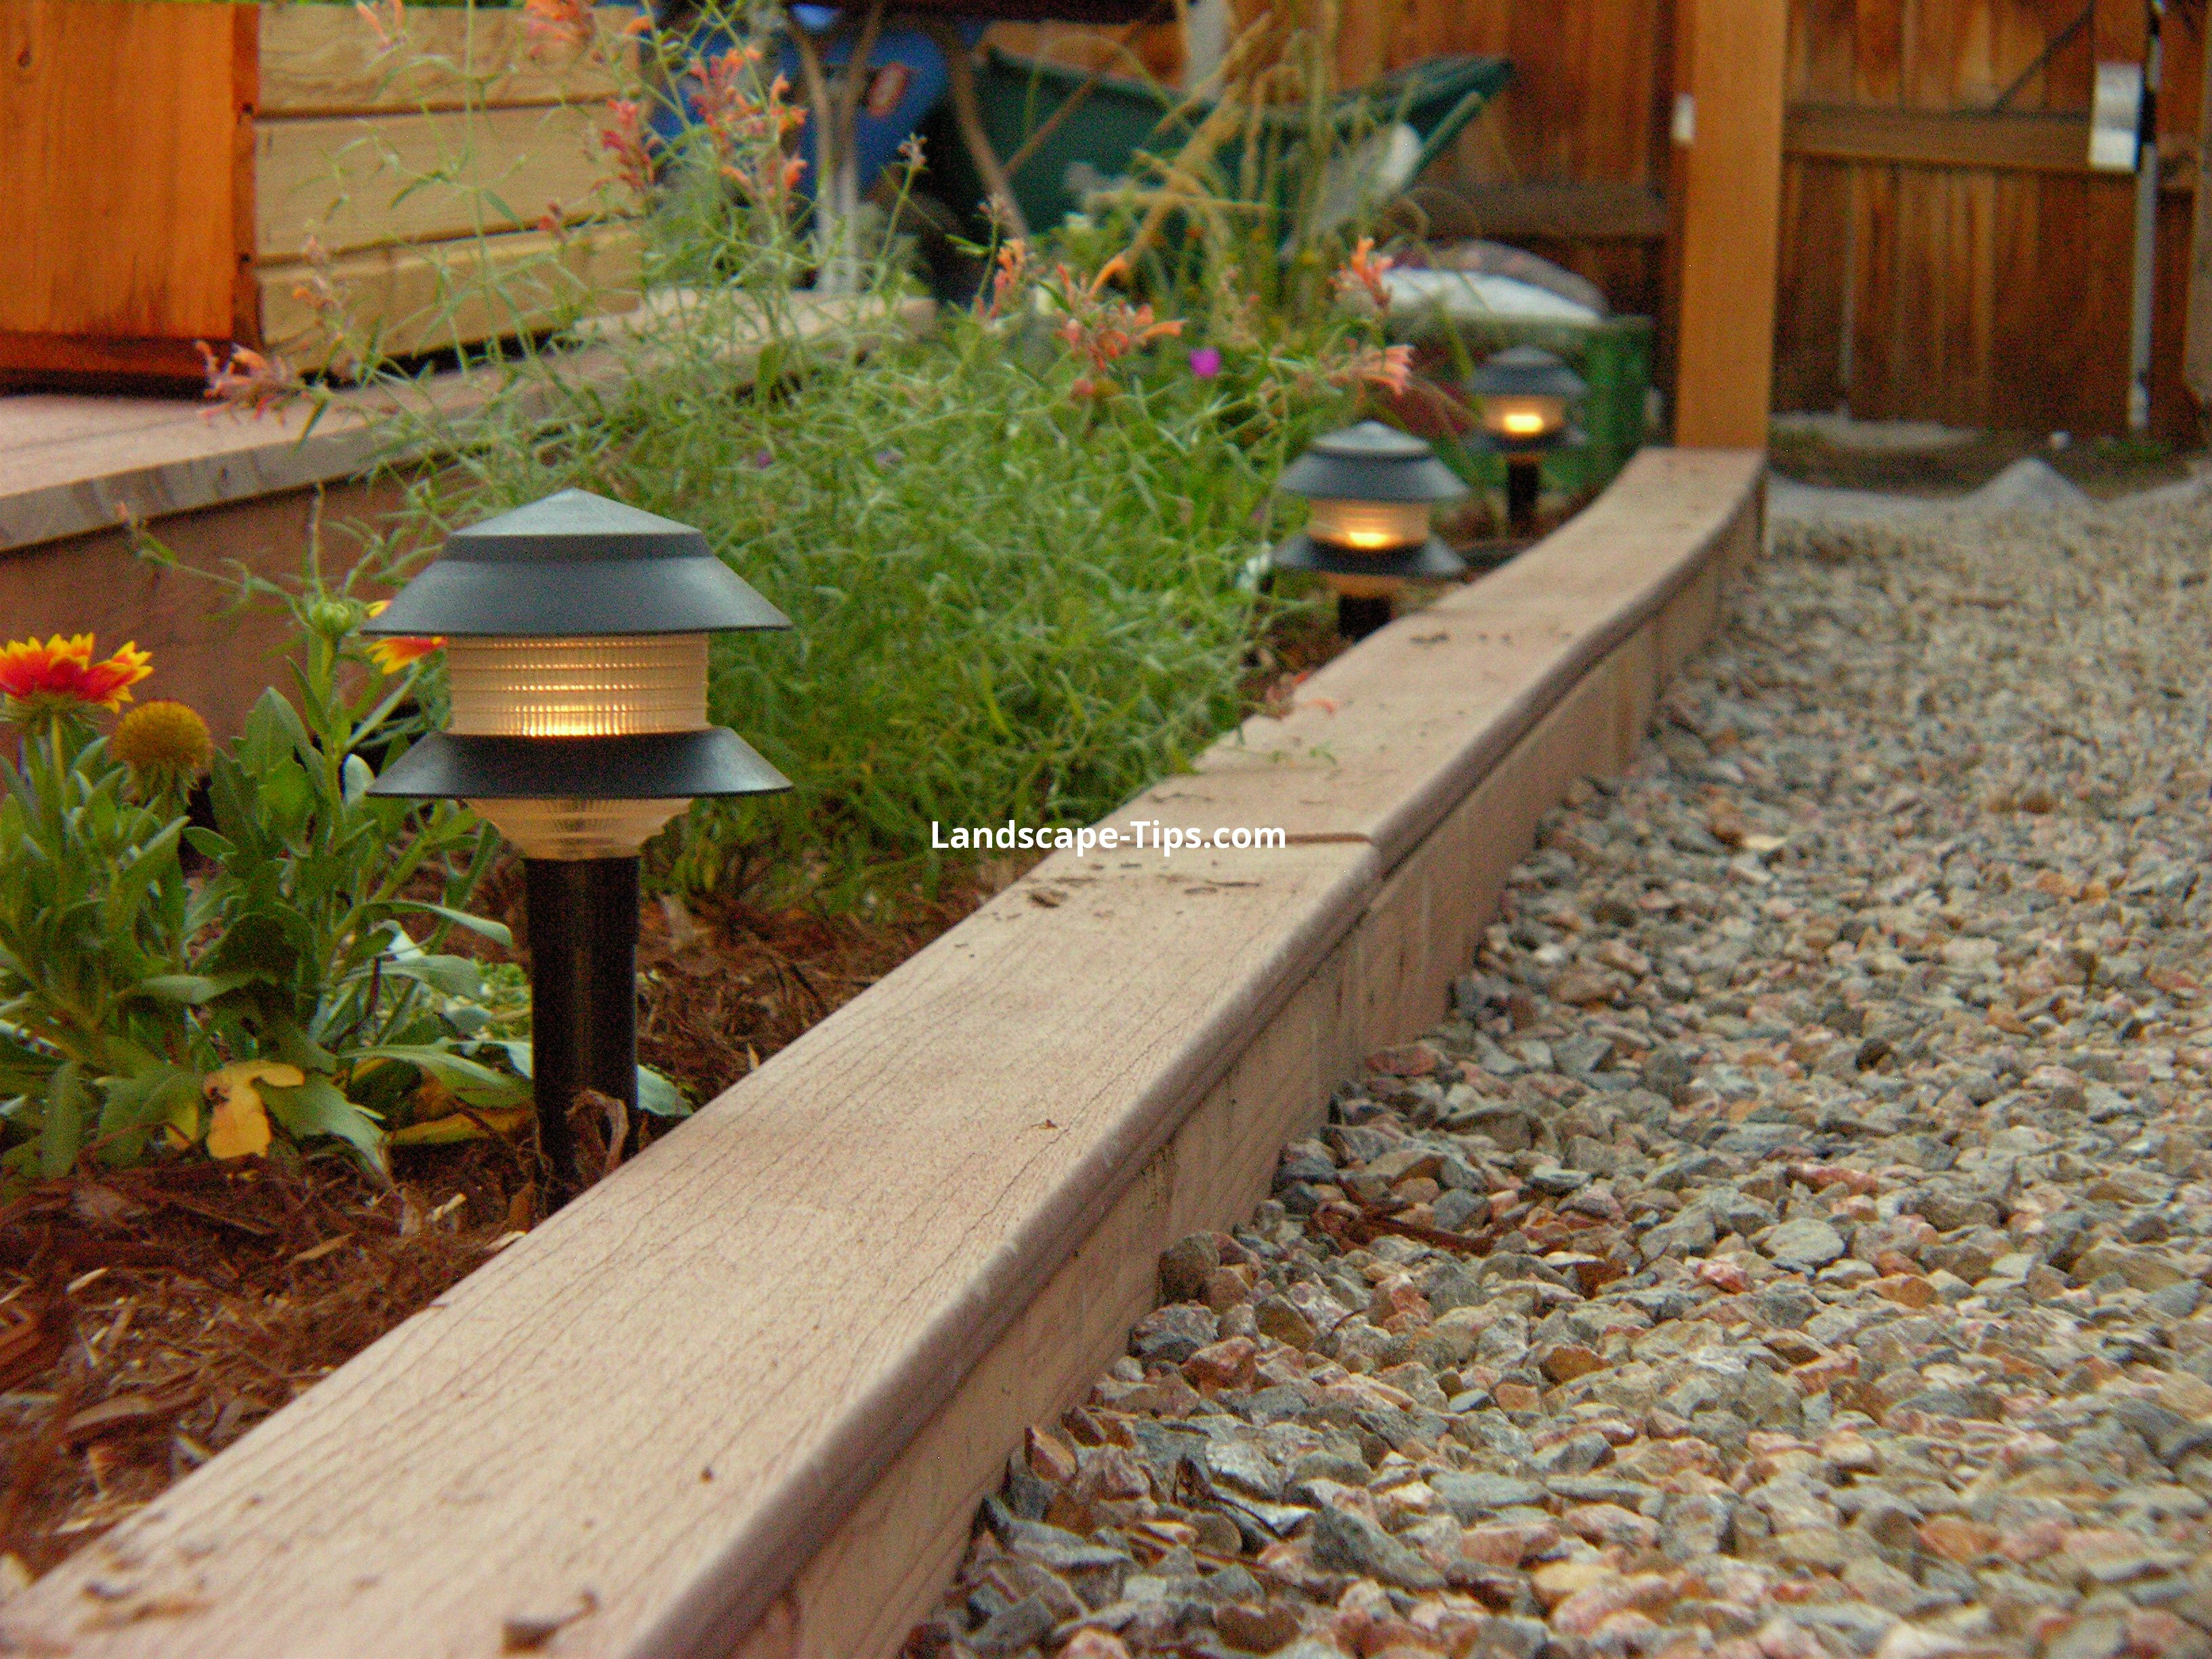 Landscape Edger | Walkway Edging | Landscape Edging Ideas